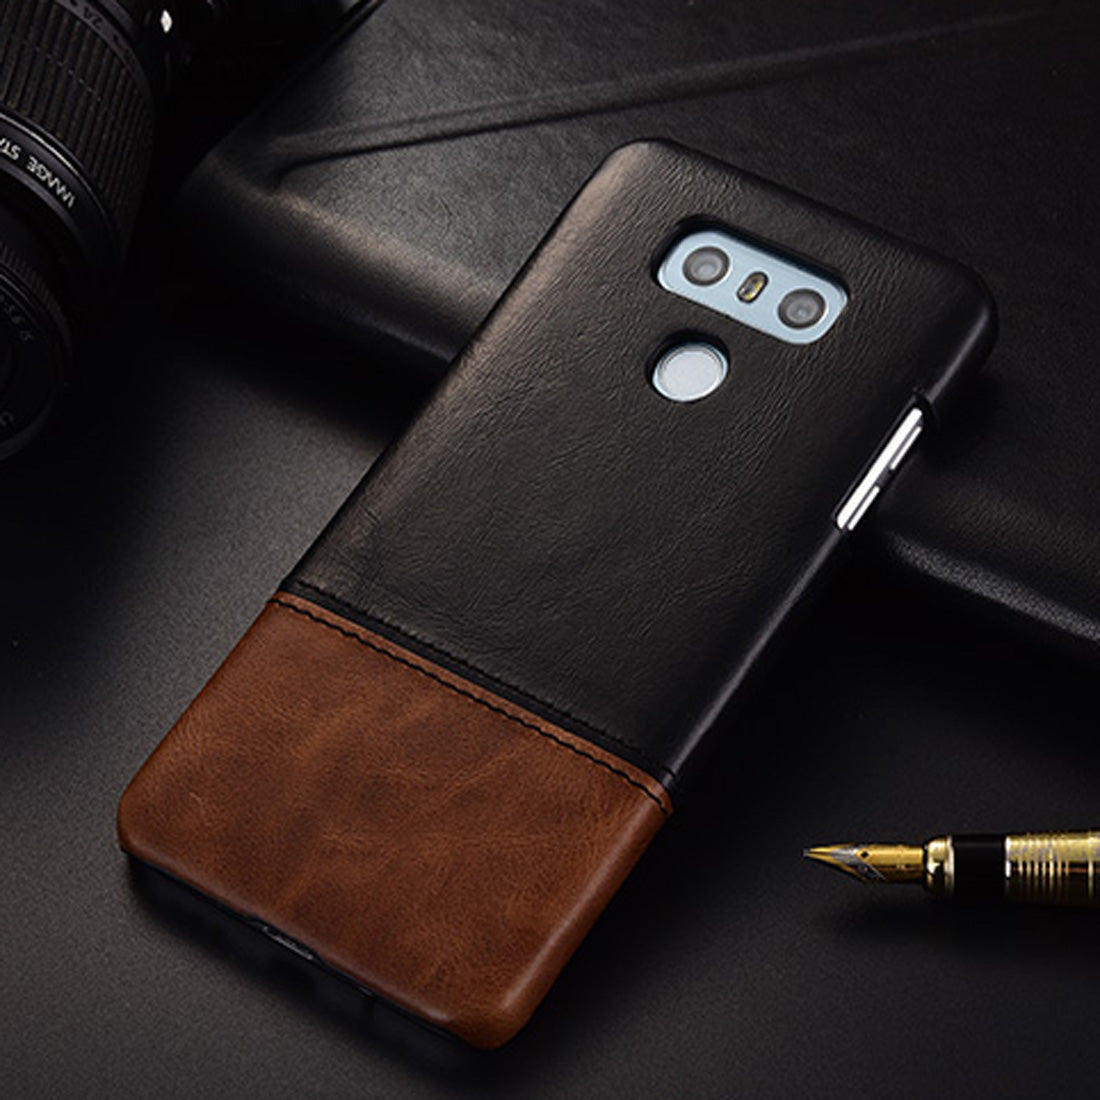 Genuine Leather Dual Color Hand Stitched Premium Protective Case Cover for LG G6 - Black , Brown - Mobizang